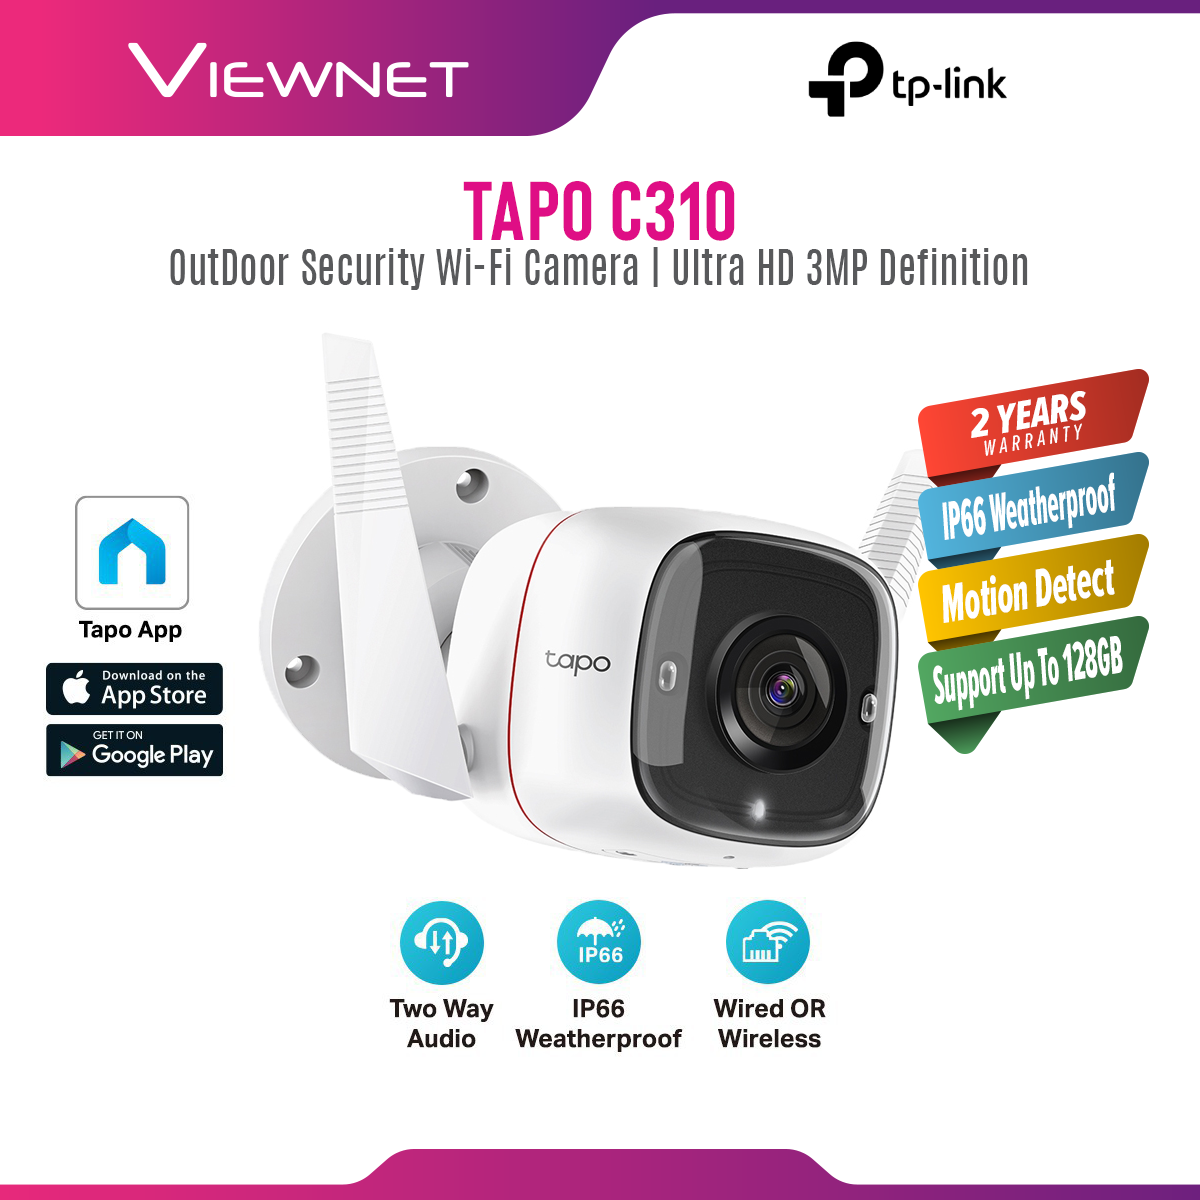 TP-Link TAPO C310 Ultra-High-Definition 3MP definition Wireless WiFi Smart Security IP Camera